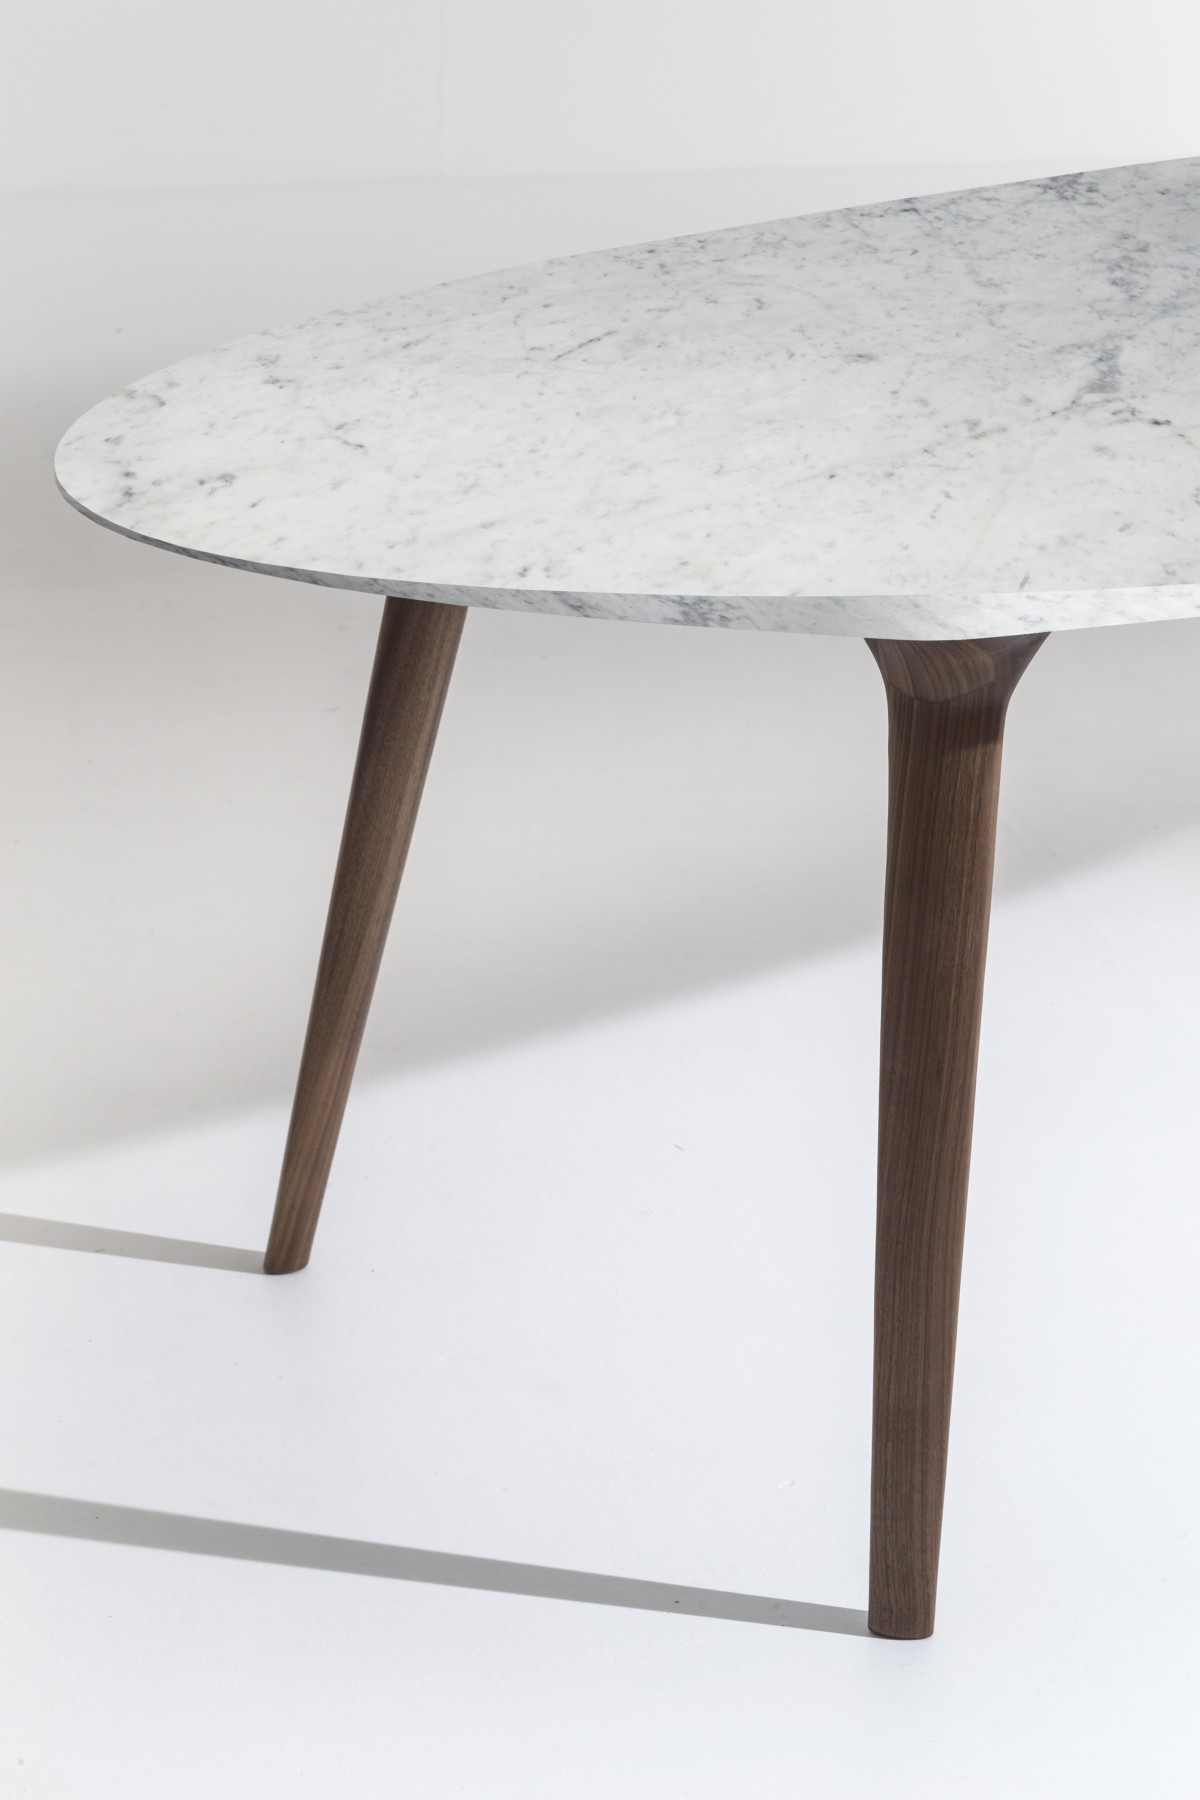 Ademar collection tables Giulio Iacchetti for Bross 14